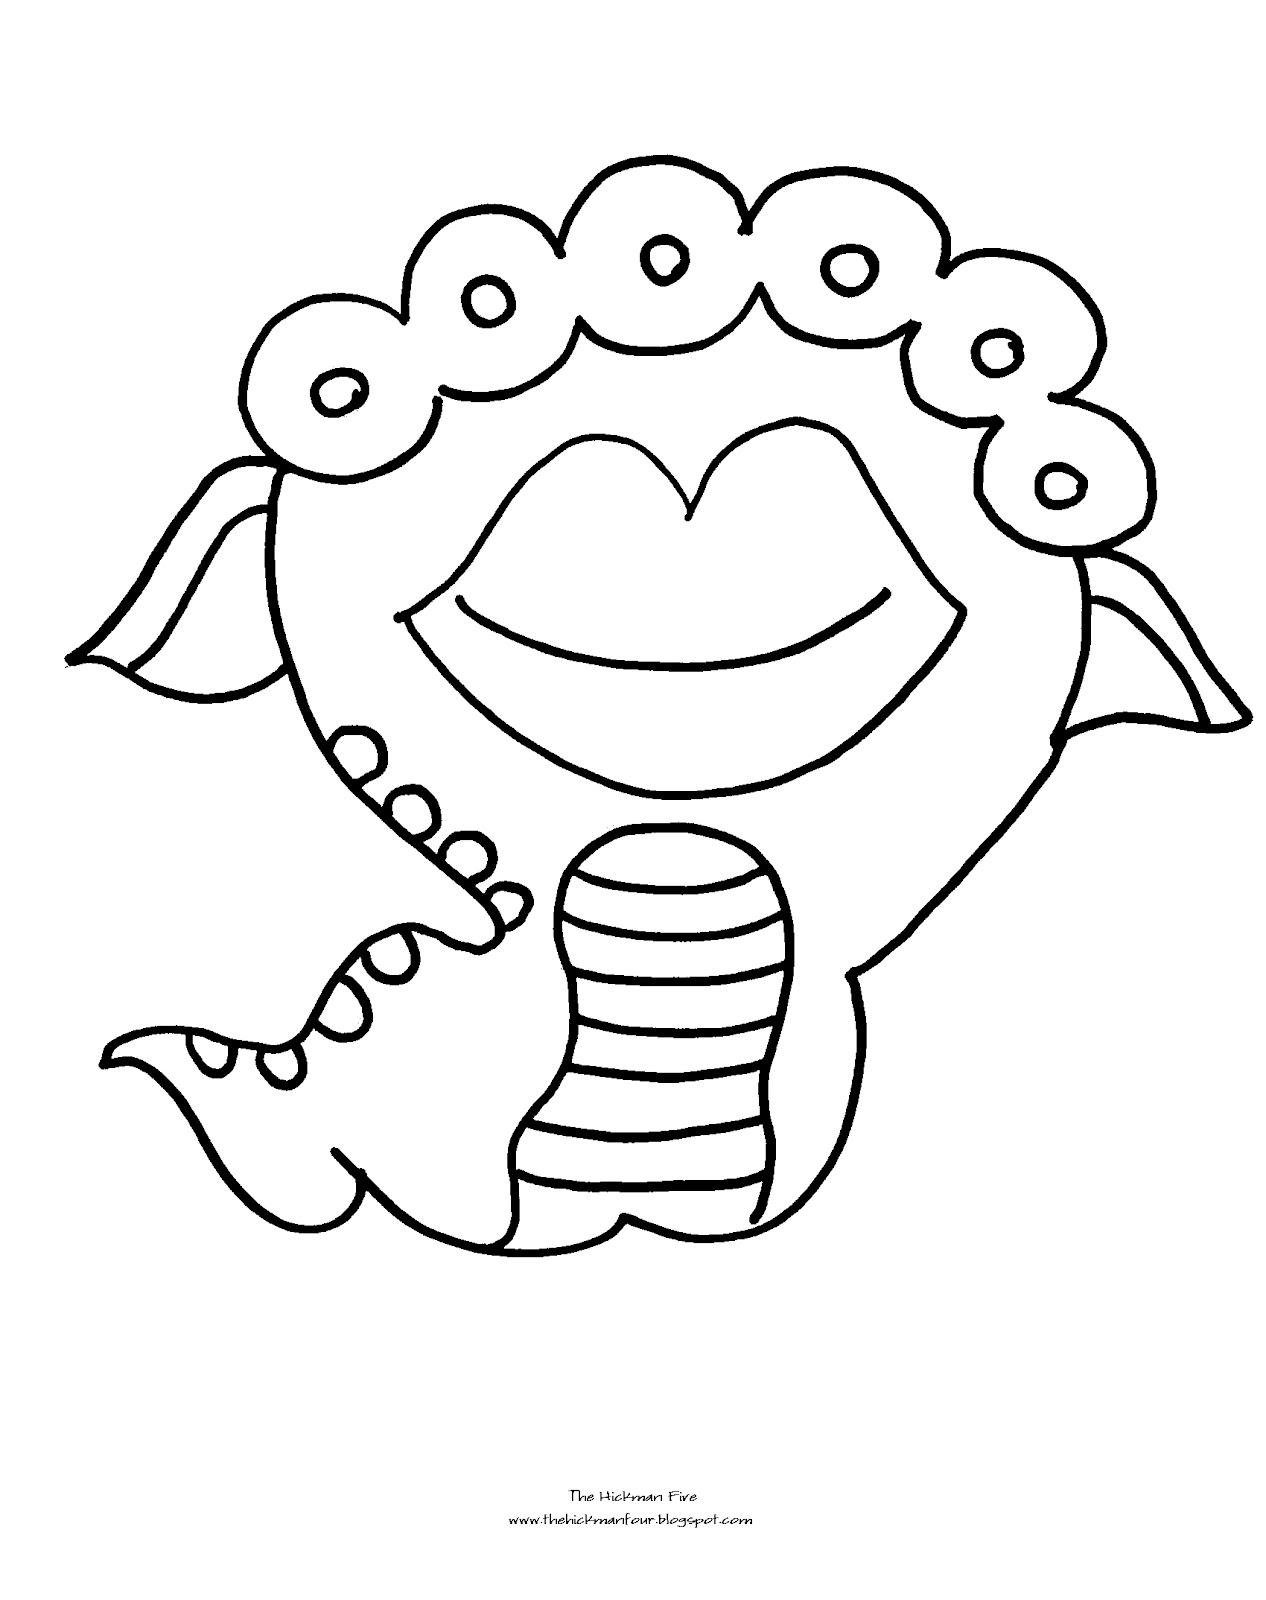 Cookie Monster Coloring Pages To Print Elegant Cookie Monster